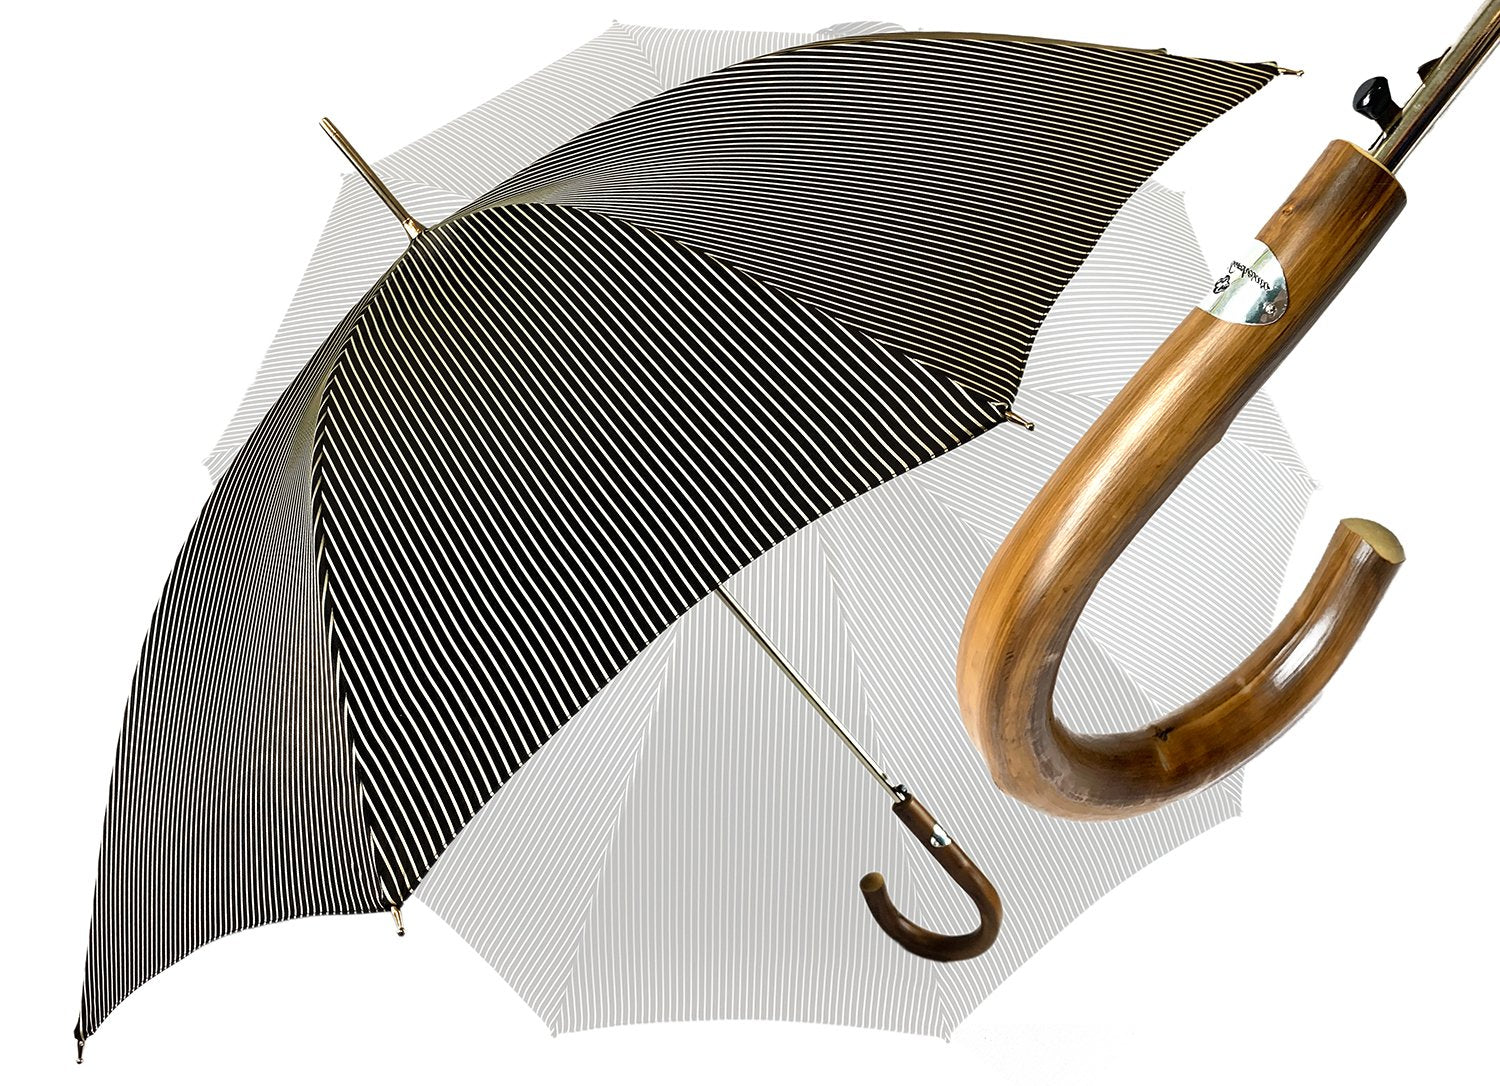 Black and White striped Classic Umbrella - IL MARCHESATO LUXURY UMBRELLAS, CANES AND SHOEHORNS